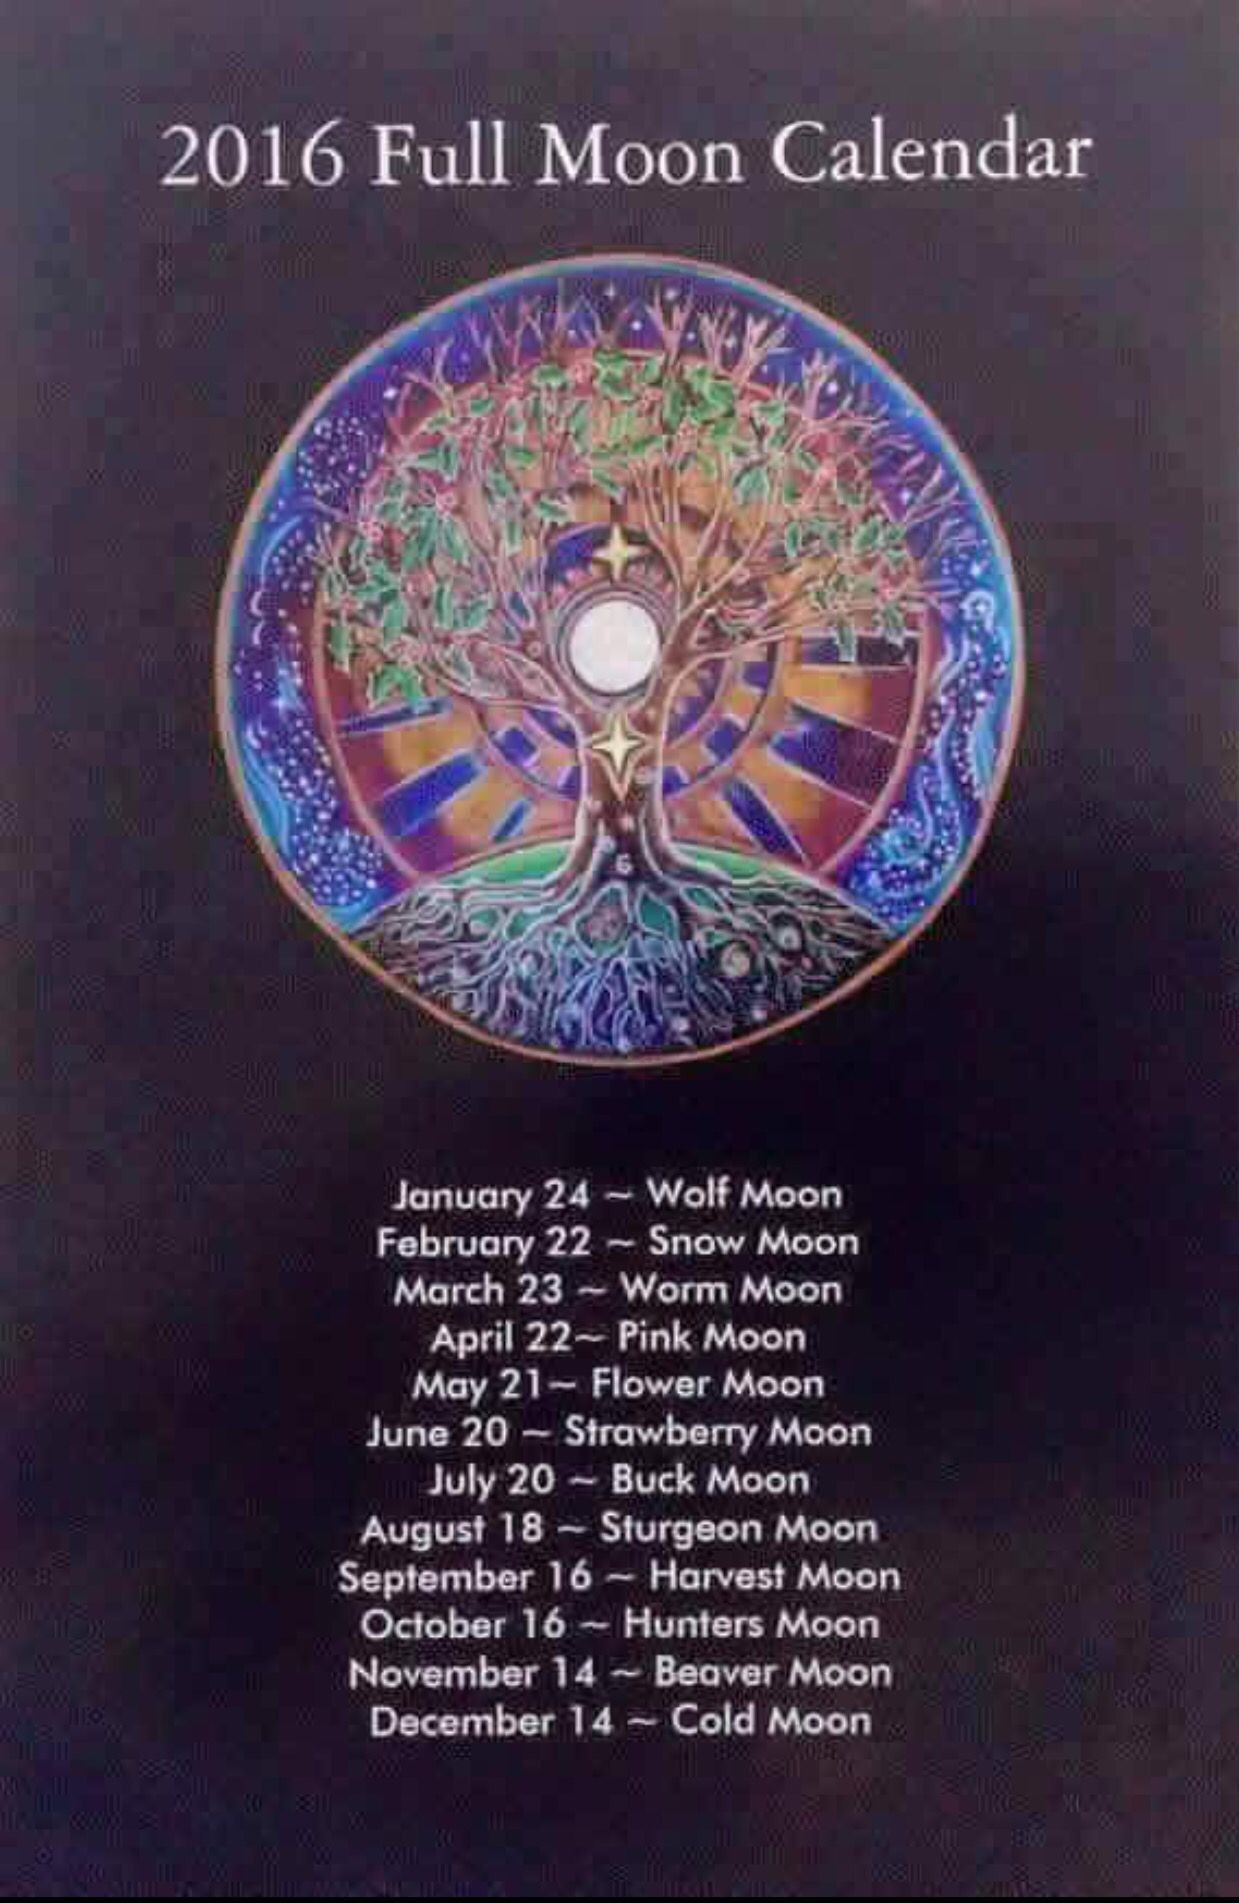 Full Moon Calendar 2019 Usa Printable Más Recientemente Liberado Category World event Calendar 161 Of Full Moon Calendar 2019 Usa Printable Más Recientes the Arts – Page 2 – Browntrout Uk